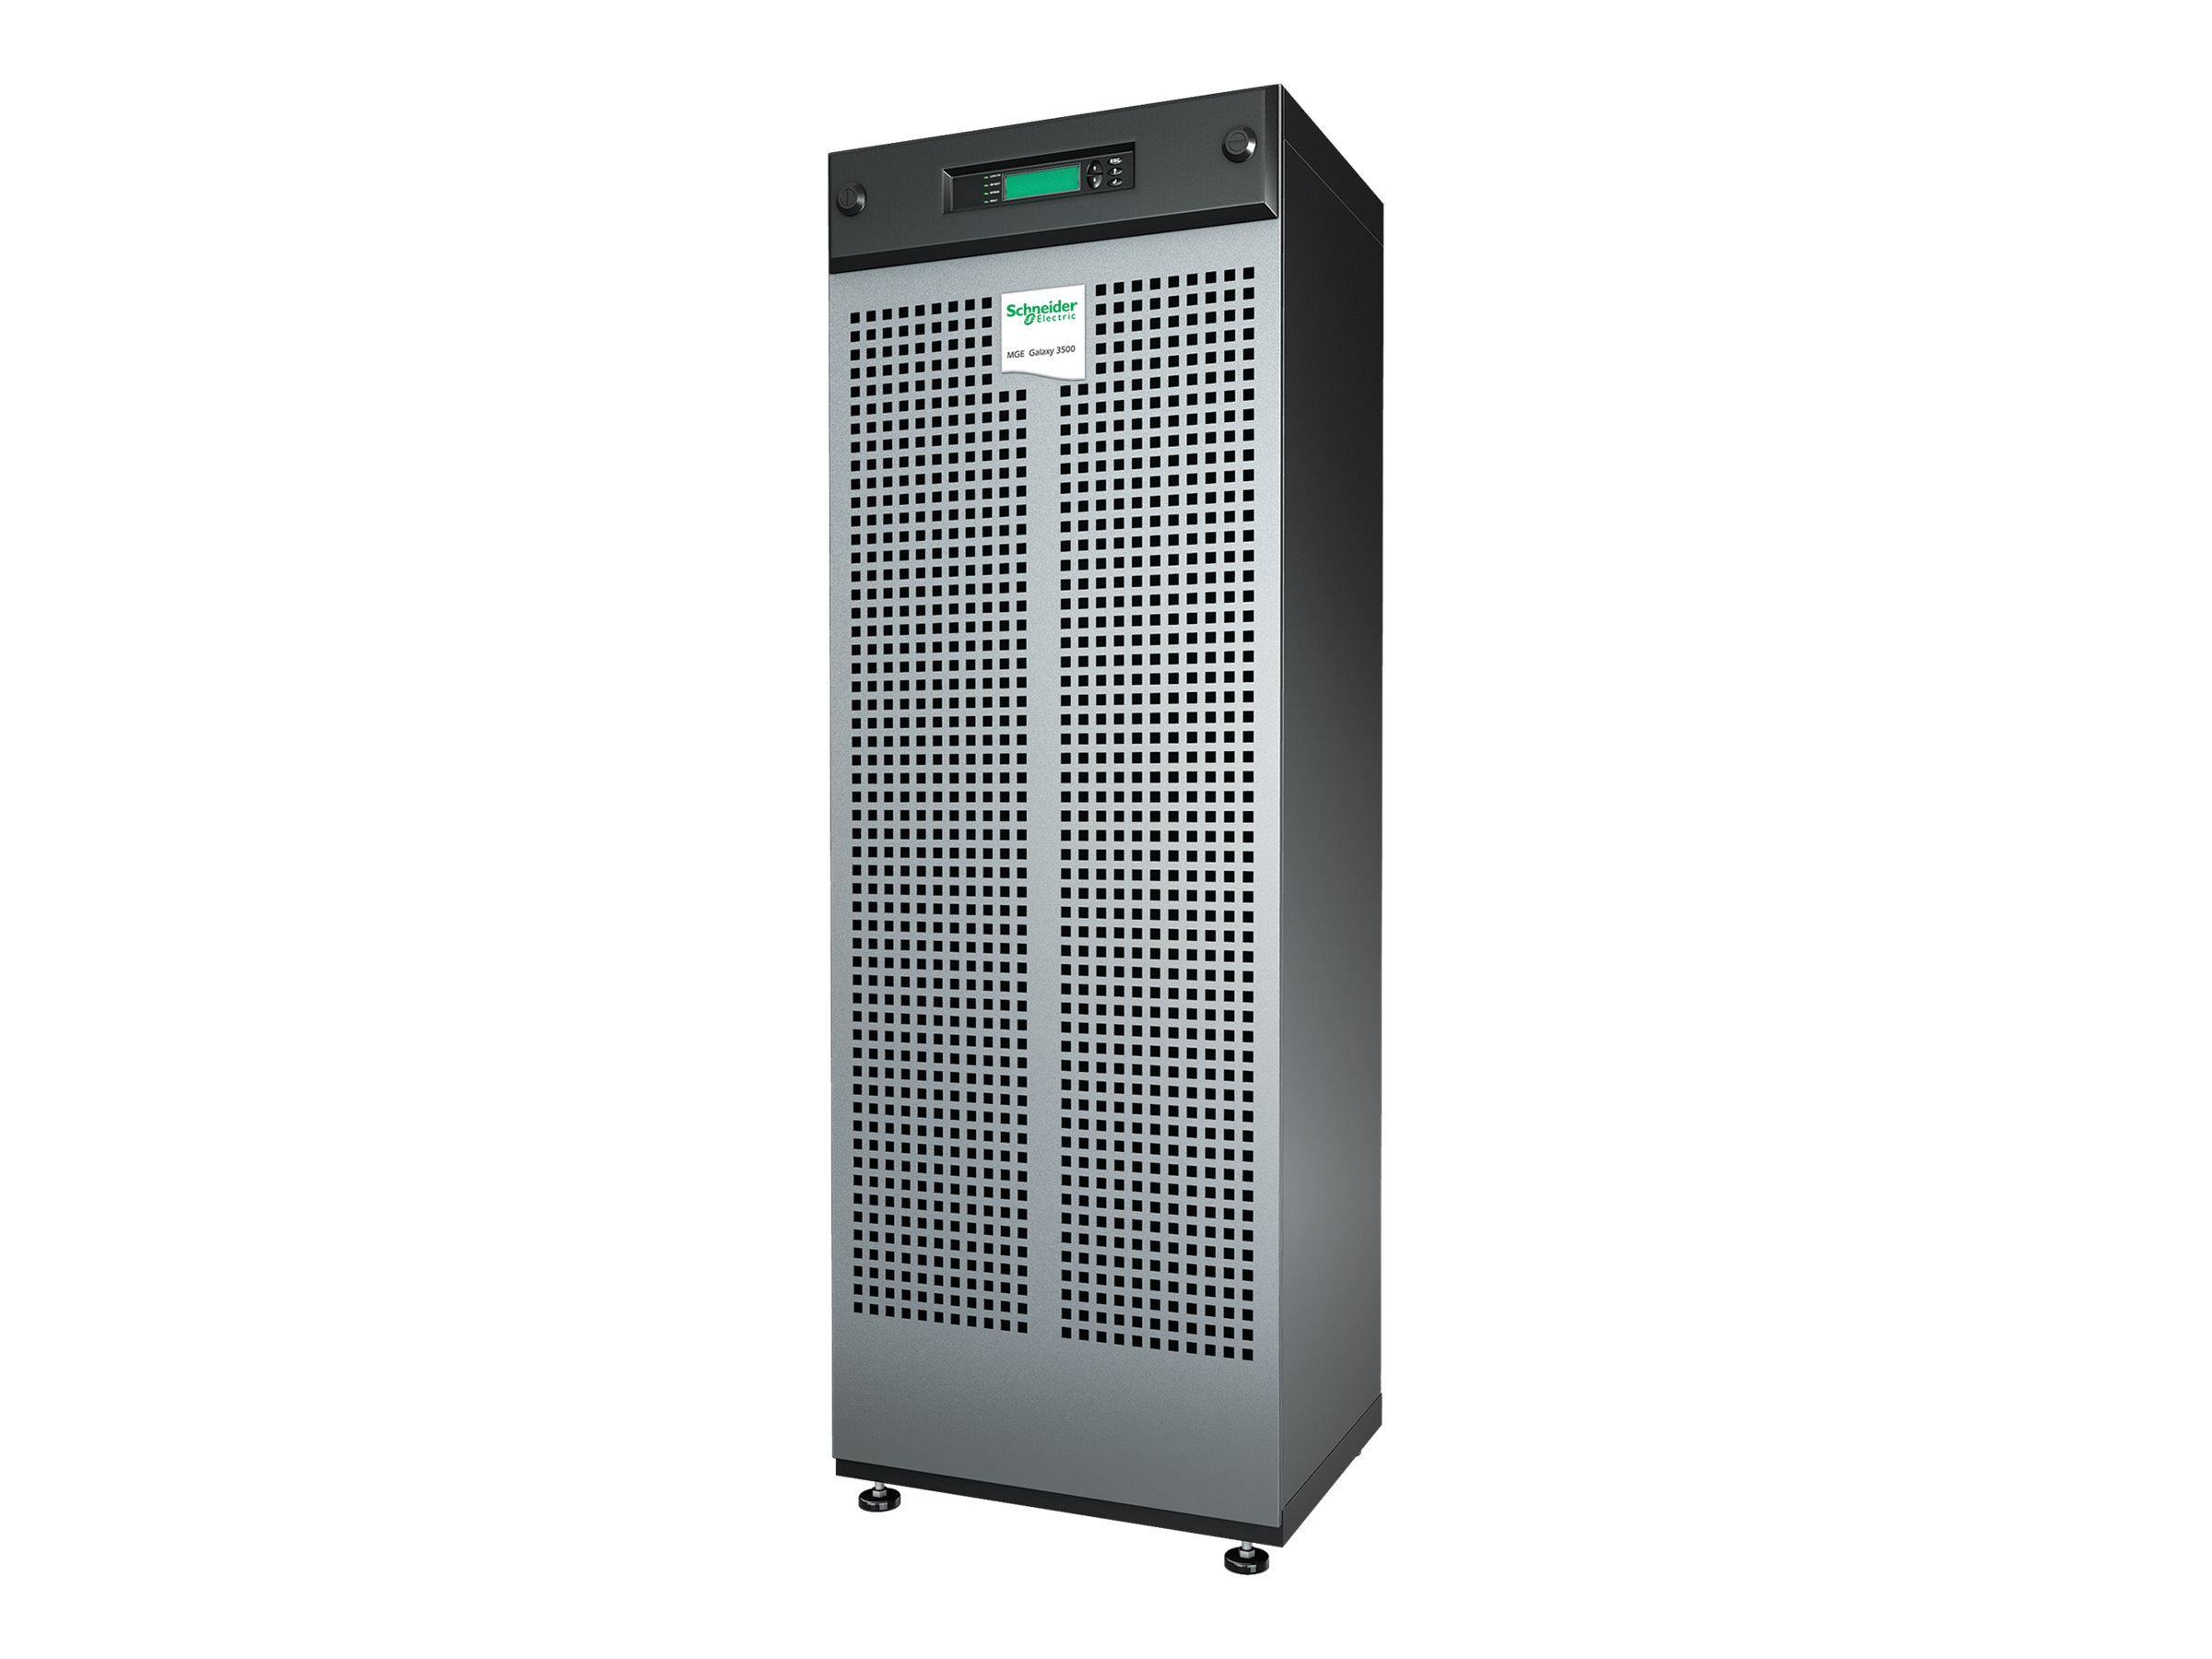 MGE Galaxy 3500 with 2 Battery Modules Expandable to 4 - UPS - 16 kW - 20000 VA